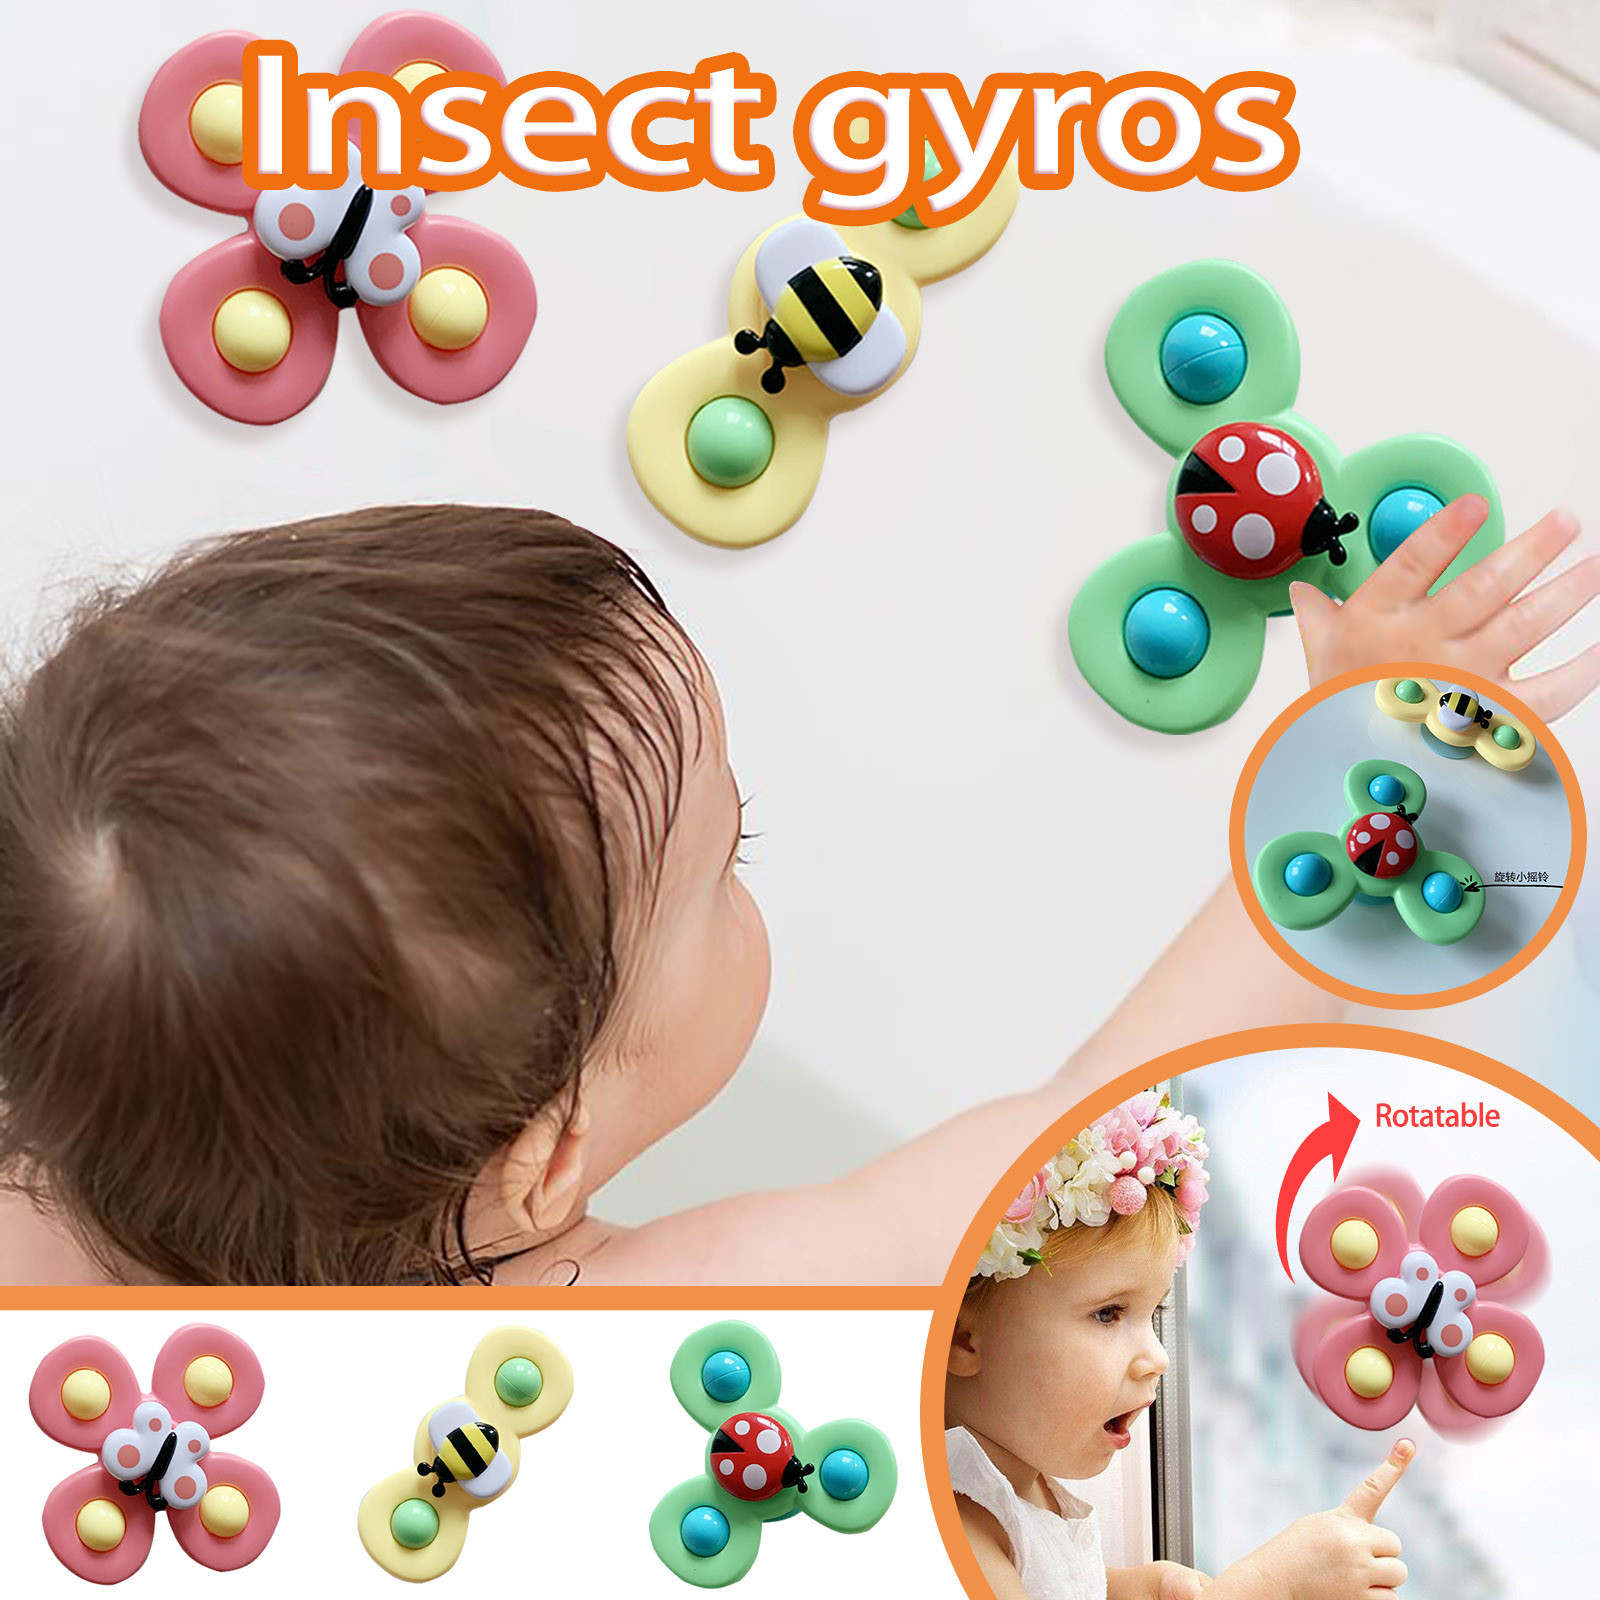 Fidget-Spinner-Toys Spinning-Games Cartoon Insect-Gyro-Toy Relief-Stress Fingertip Educational